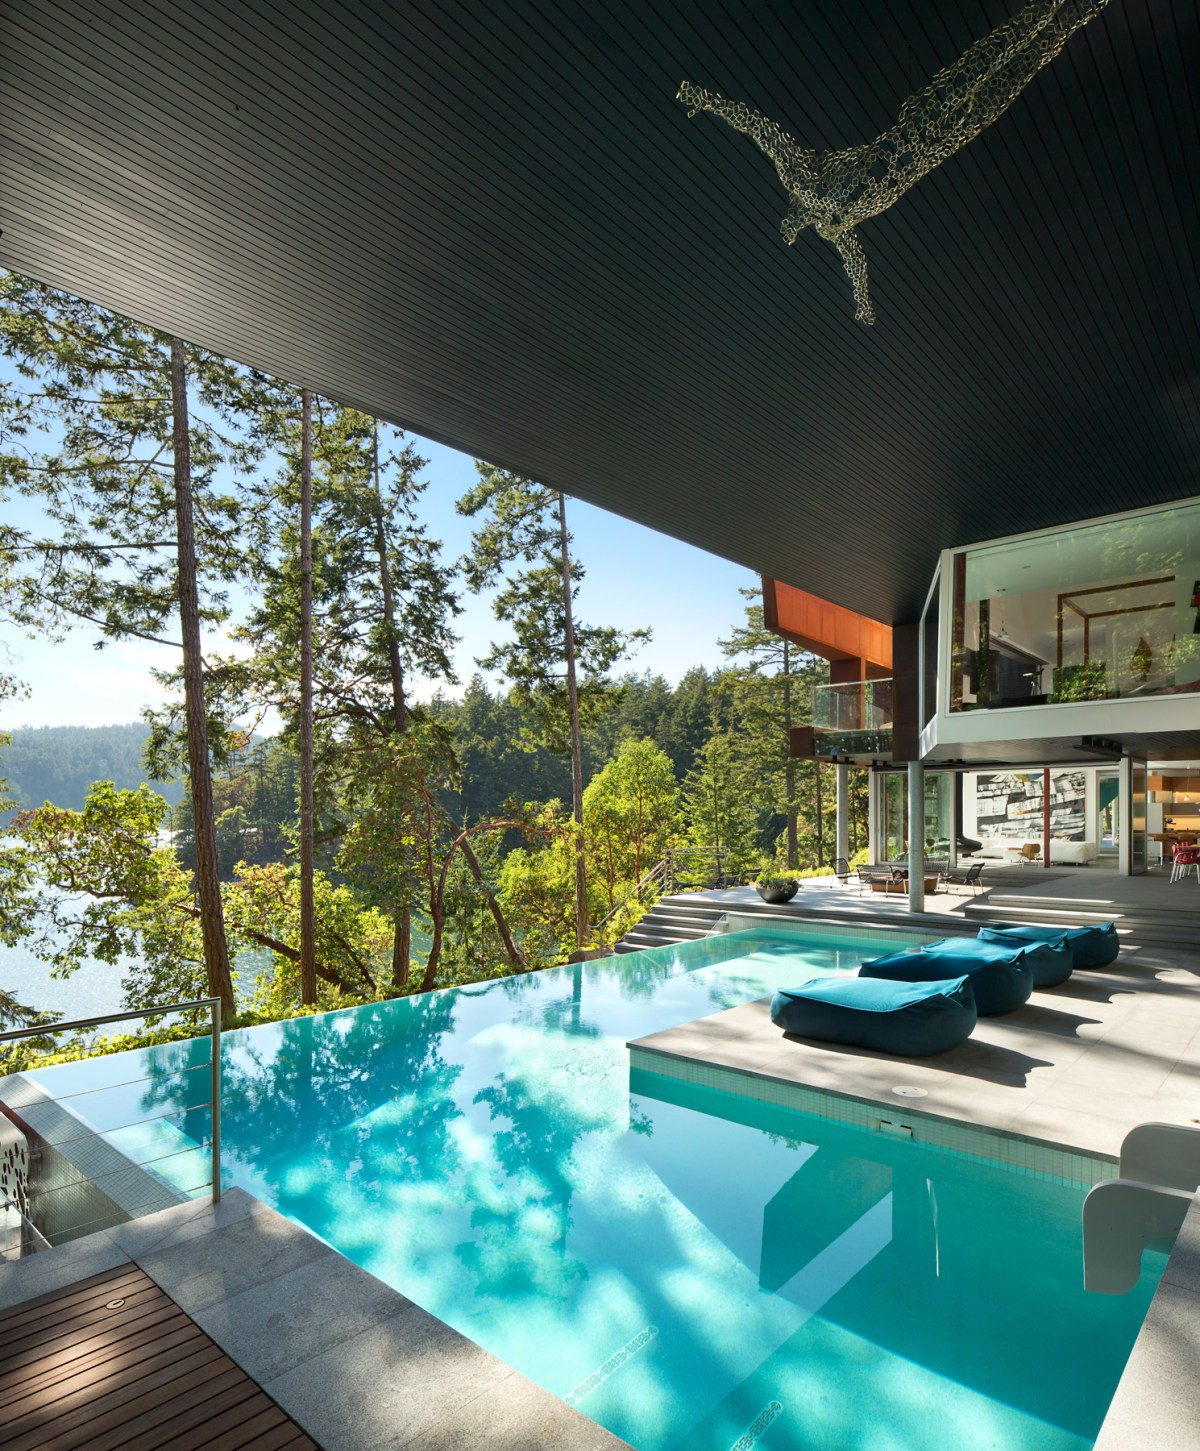 Gulf+Islands+Vancouver+pool